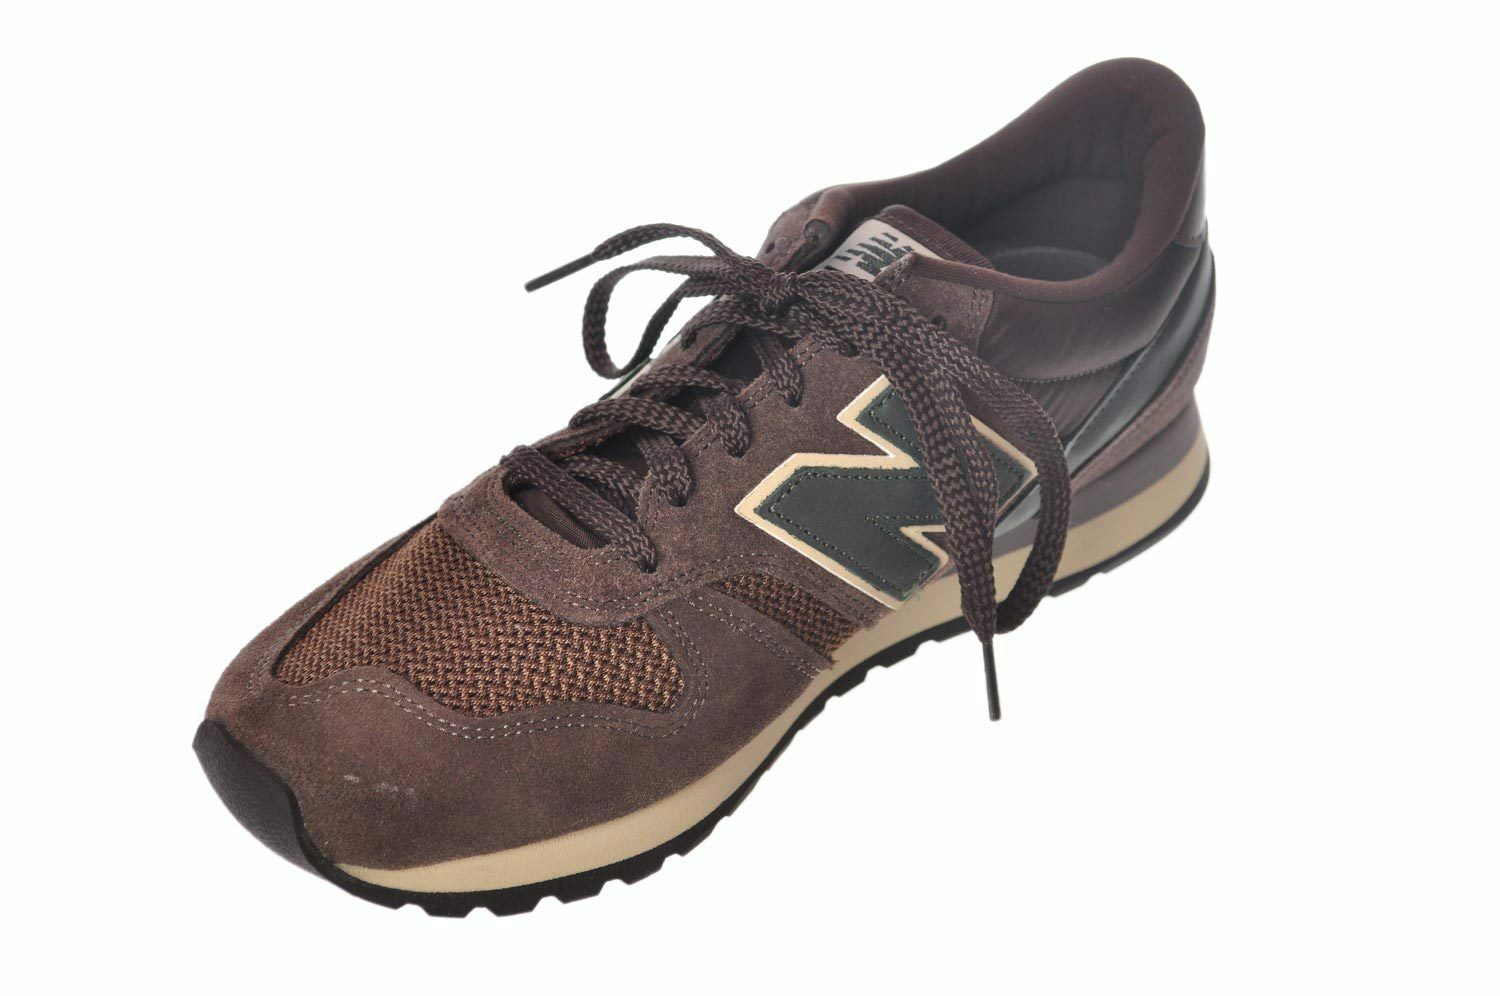 f7a3f5ccd91 ... New Balance - Lace up shoes shoes shoes - Male - Brown - 4368325A185122  0ccb0b